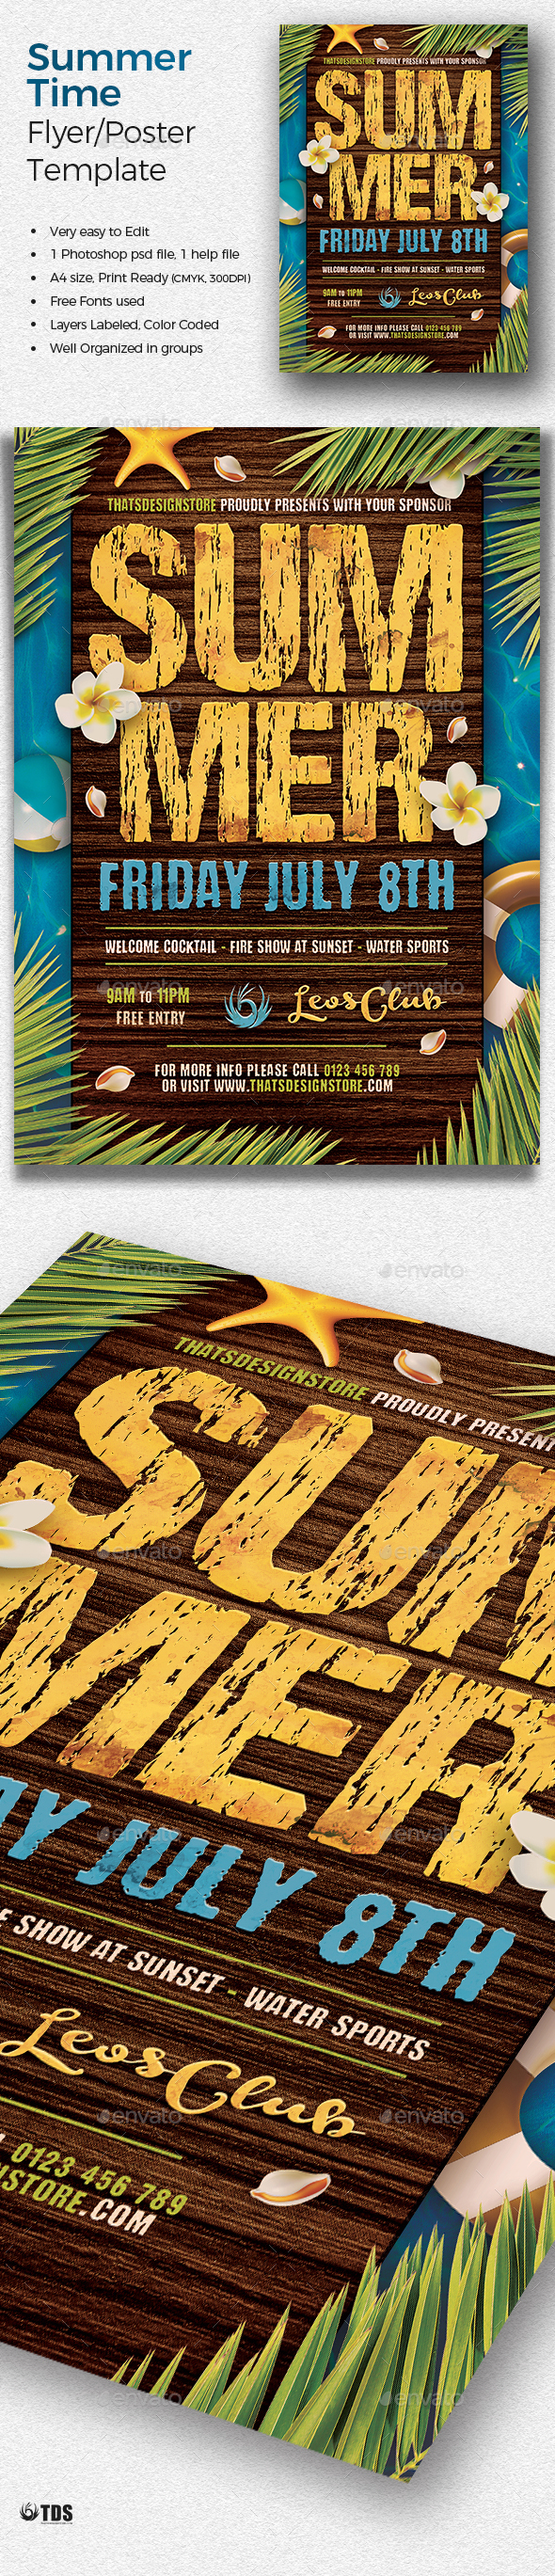 Summertime Flyer Template V3 - Clubs & Parties Events